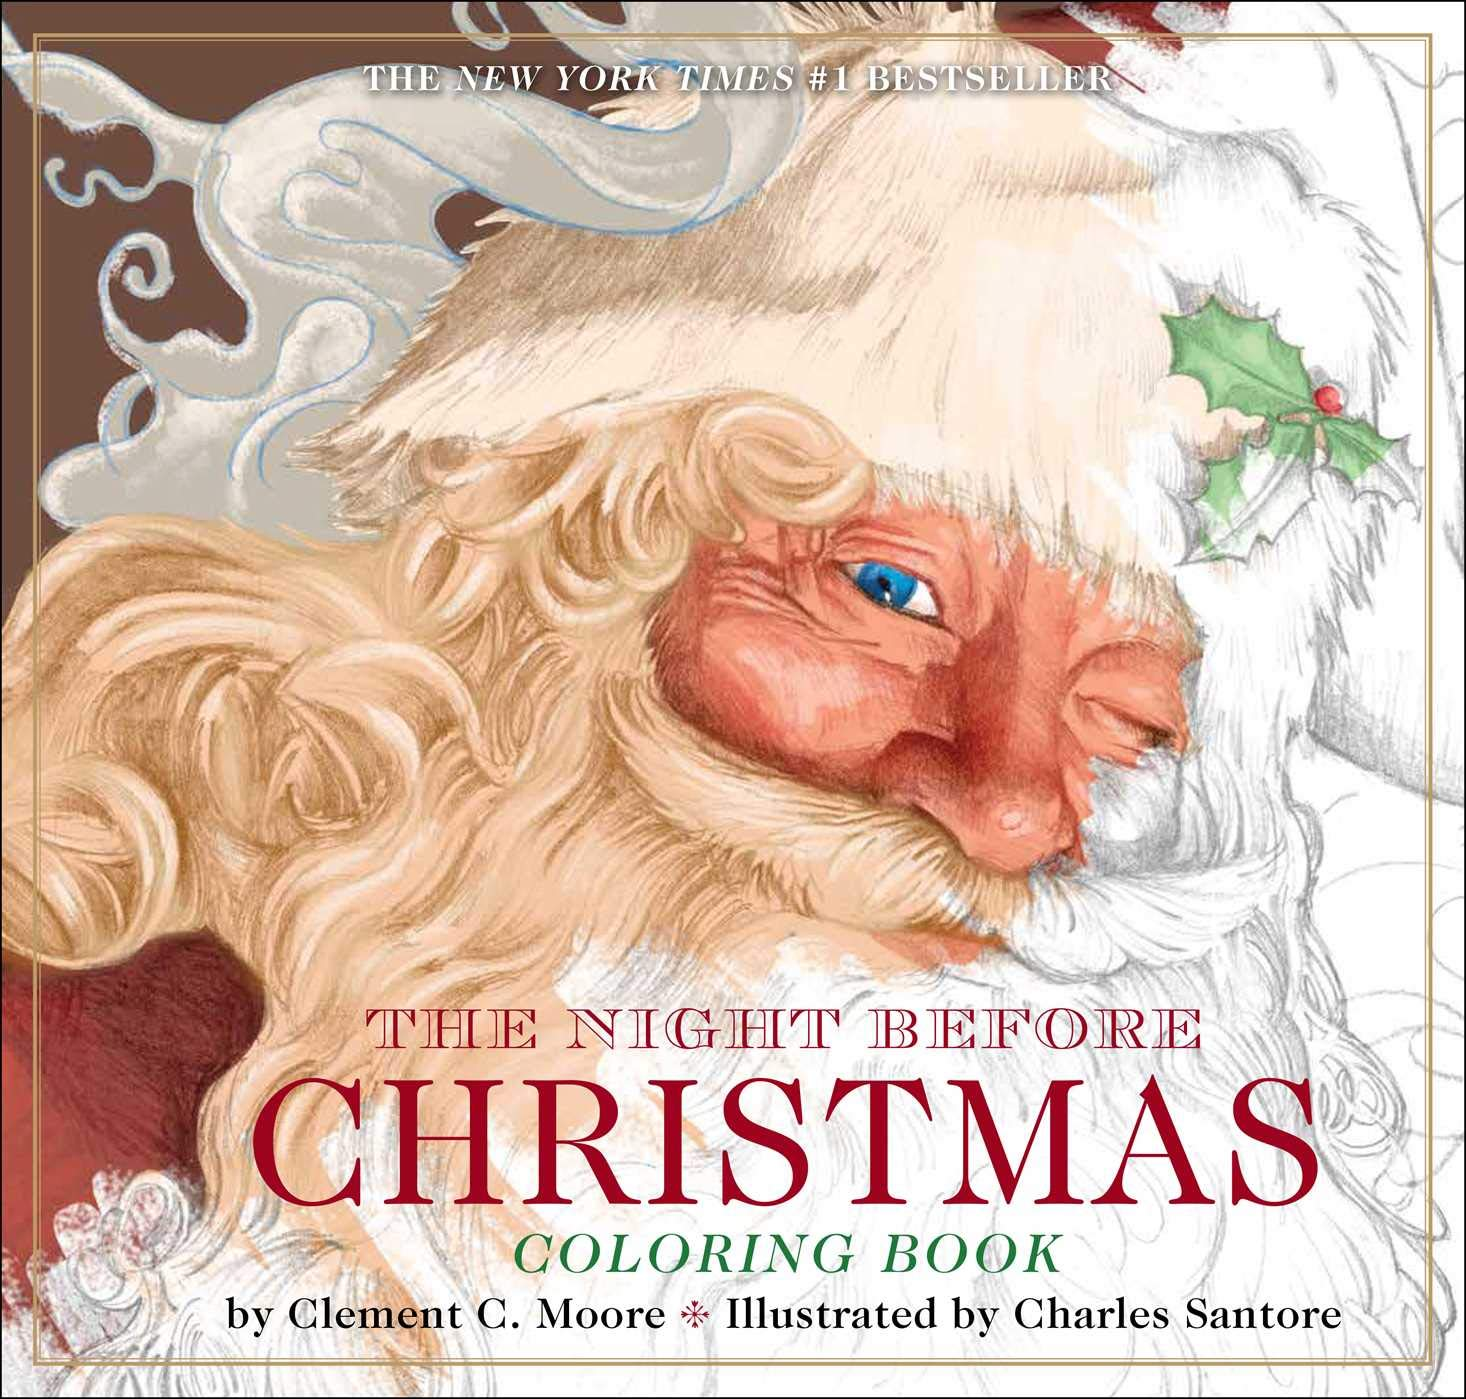 The Night Before Christmas Coloring Book The Classic Edition Moore Clement Santore Charles 9781604336832 Amazon Com Books